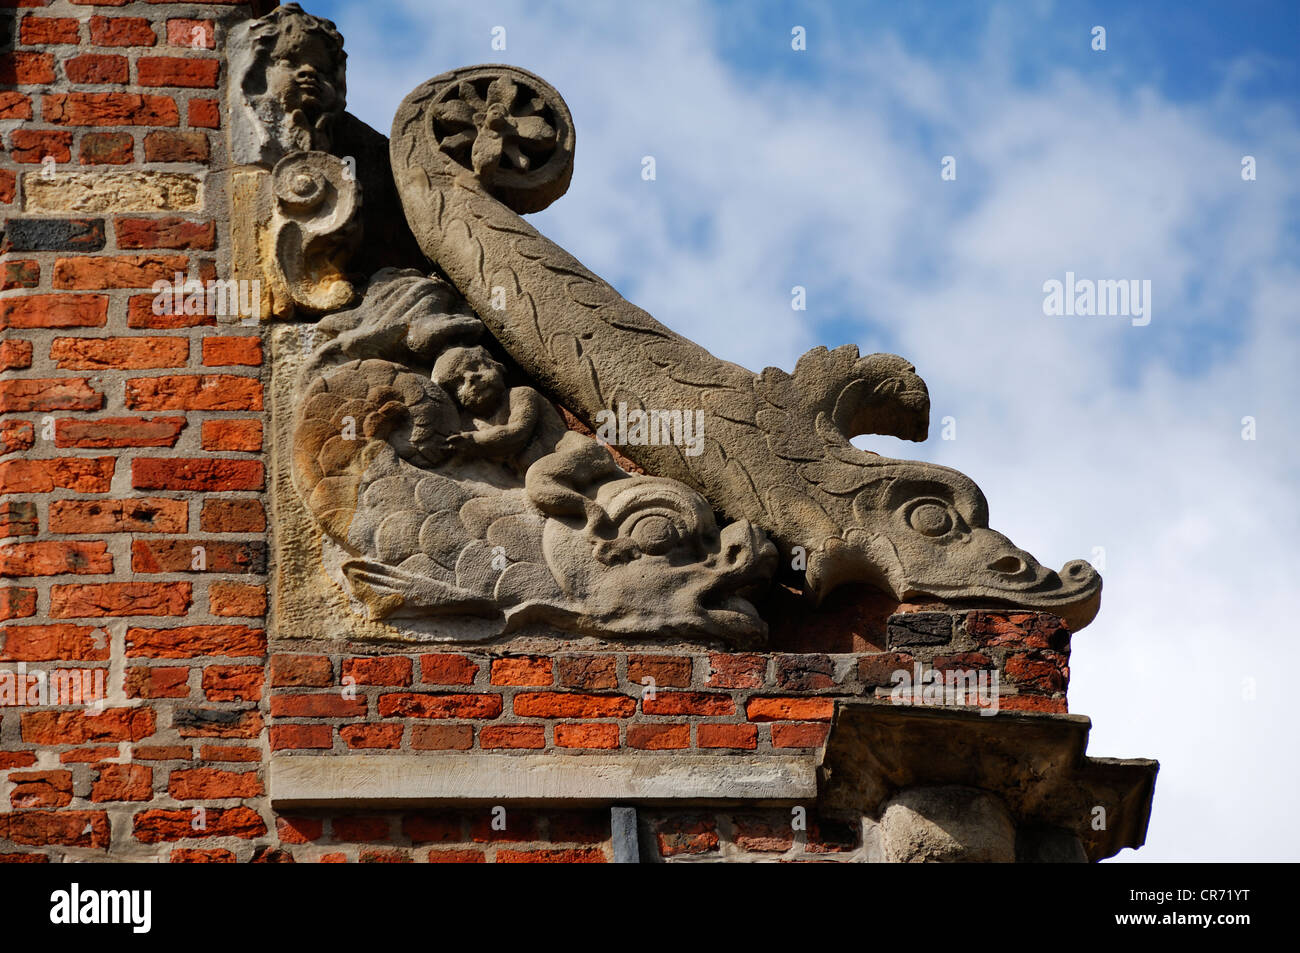 Fish sculptures on the pediment of the patrician Heinrich-Heine-Haus house built between the 15th and 16th century - Stock Image